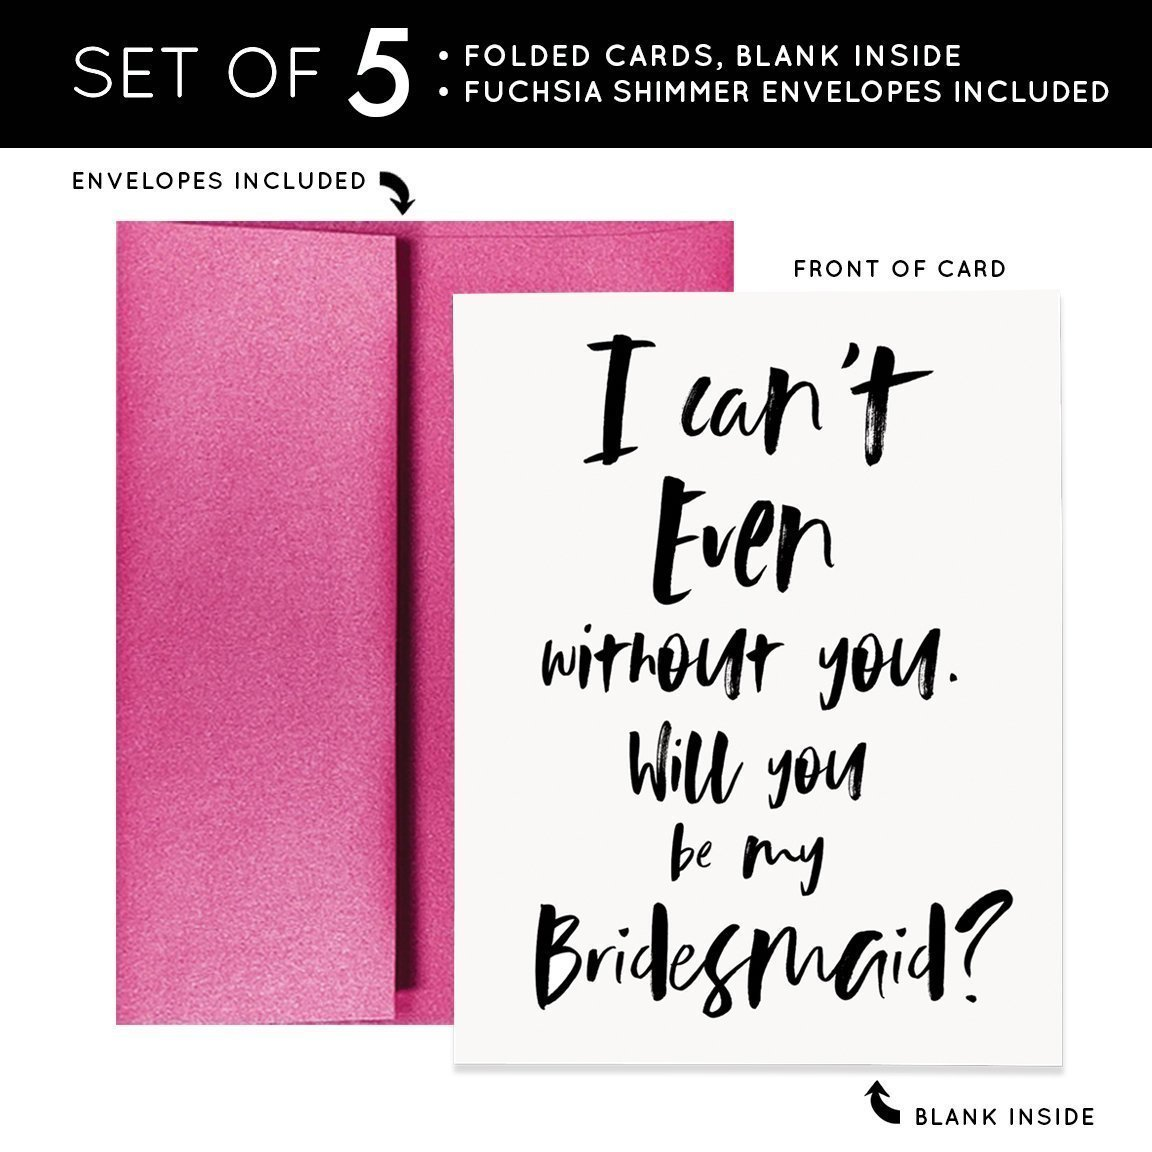 I Can't Even without you Will You Be My Bridesmaid Proposal Cards (Set of 5) Black Brush Lettering Wedding Bridal Party Modern Brides maids Cards Hot Pink Fuchsia Metallic Shimmer Envelopes CW0017-1